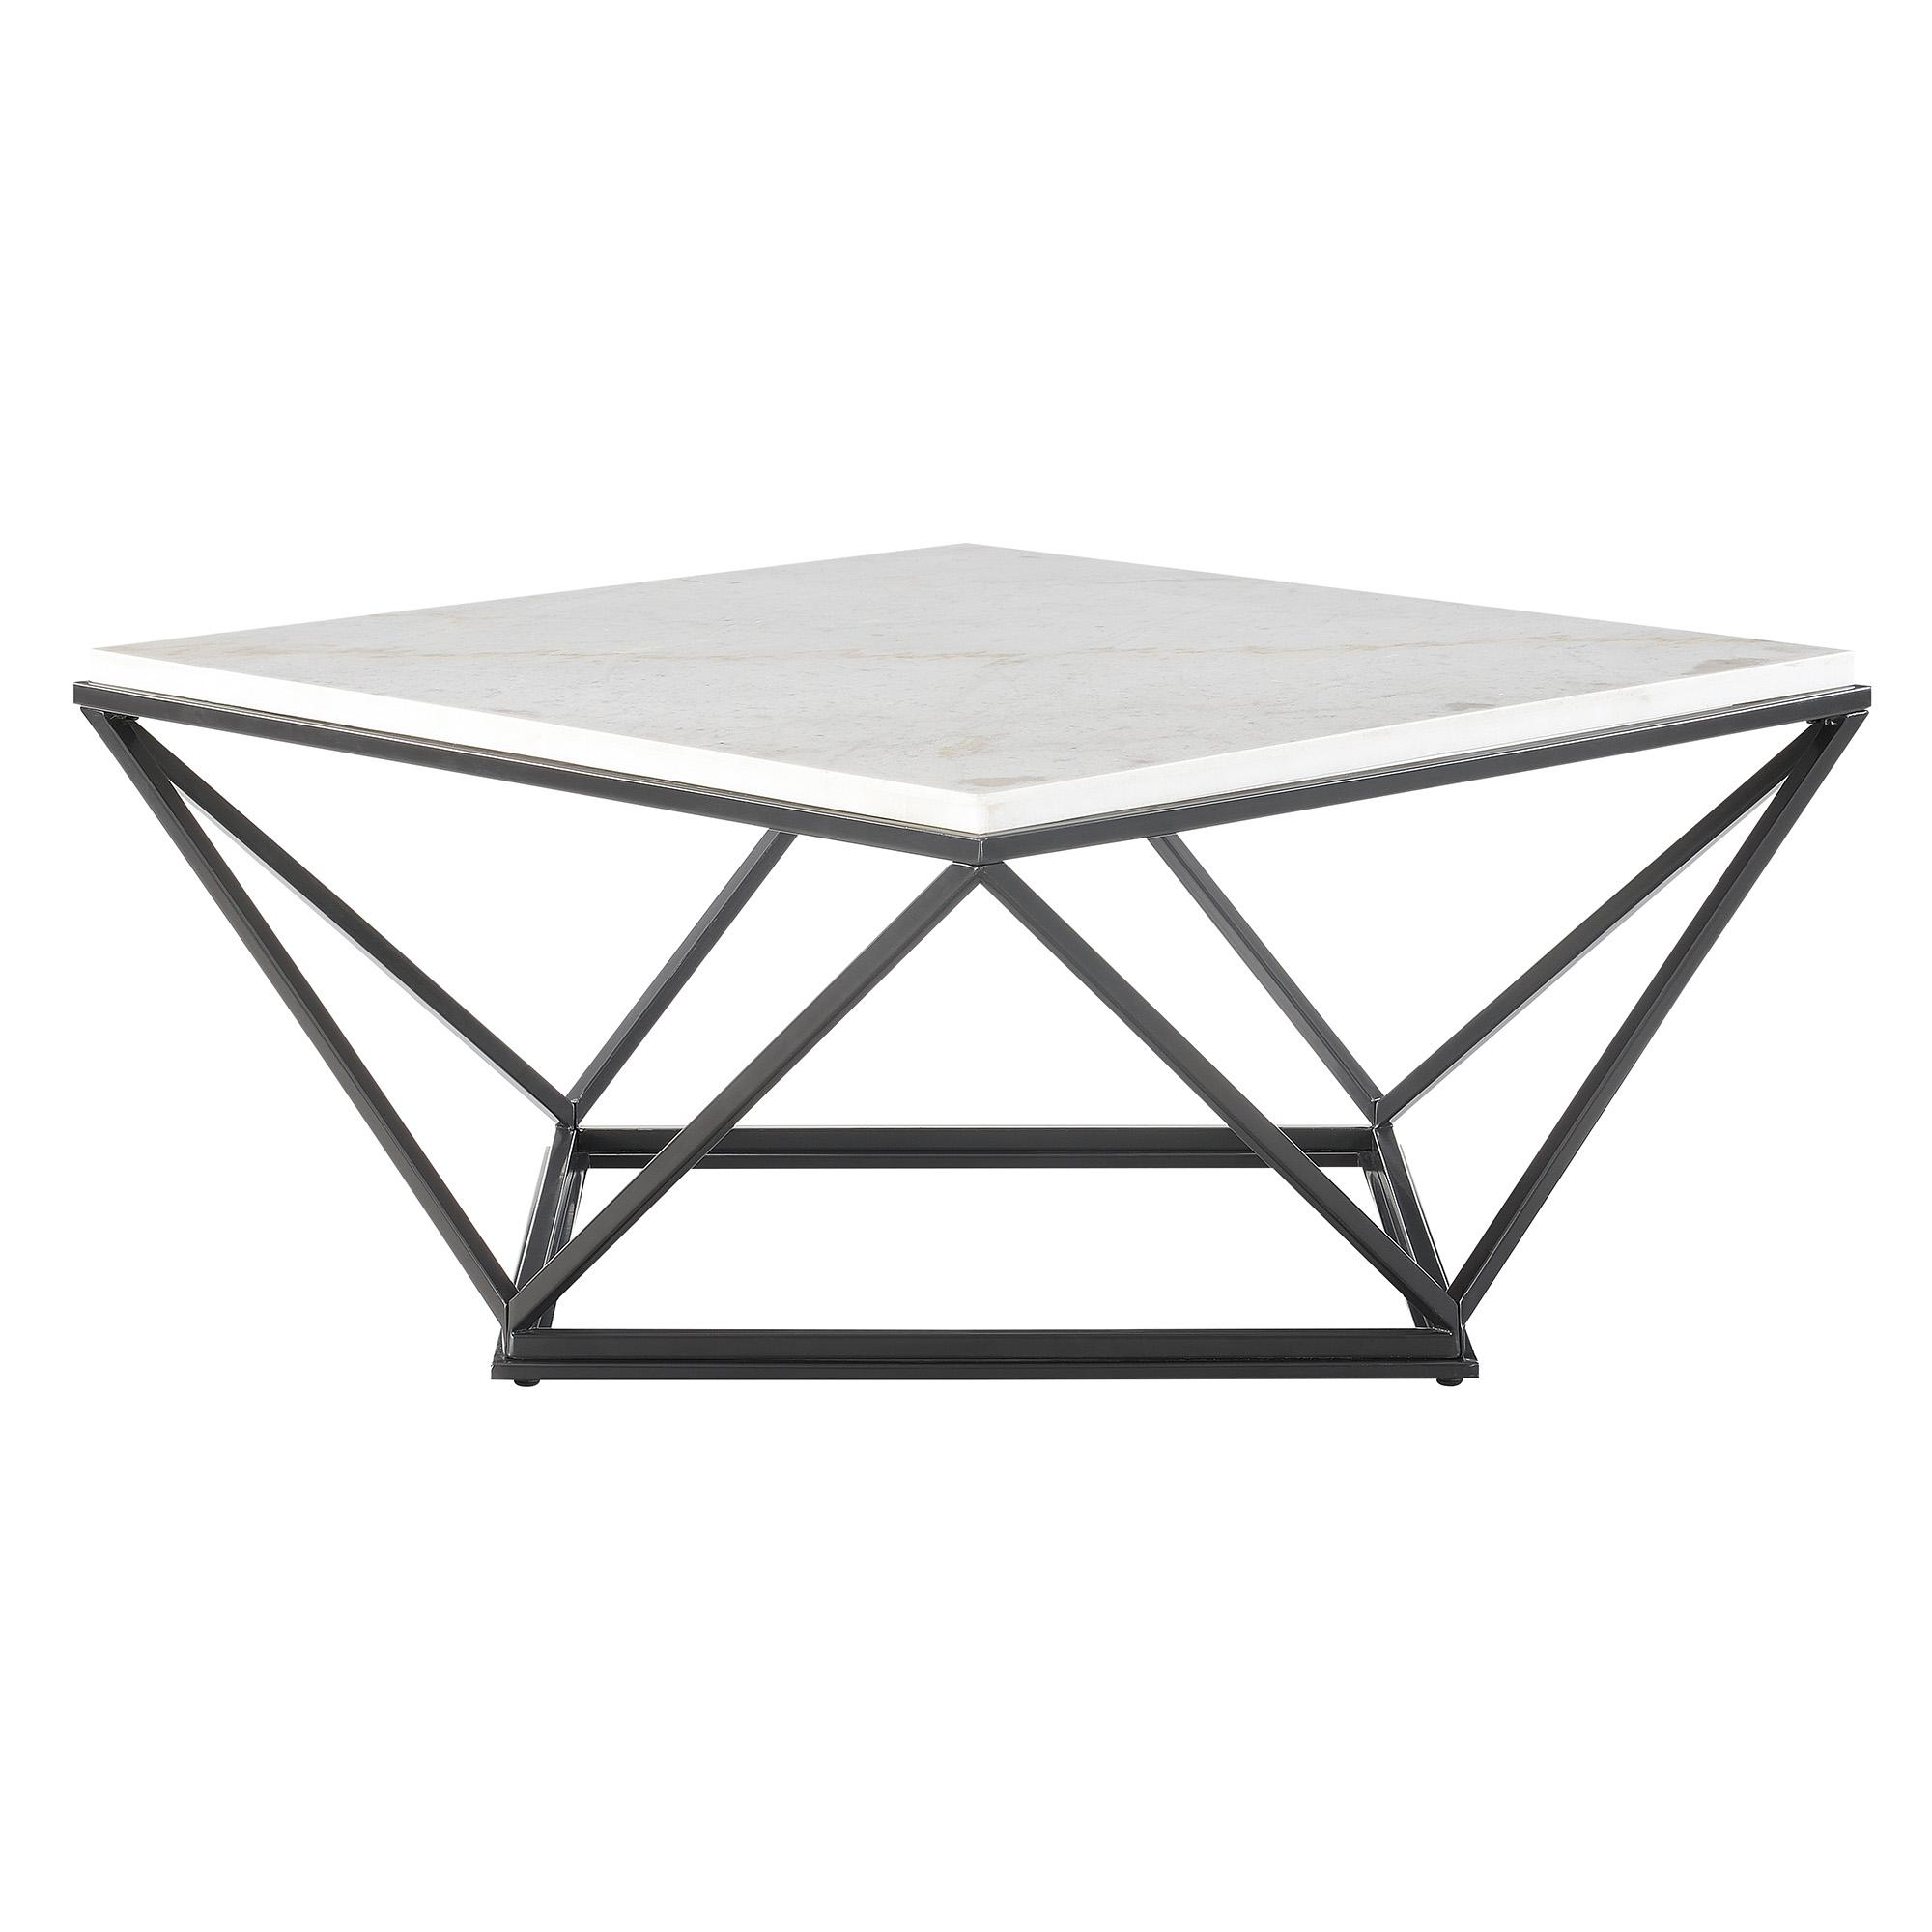 Picket House Conner Black Marble Top Square Coffee Table